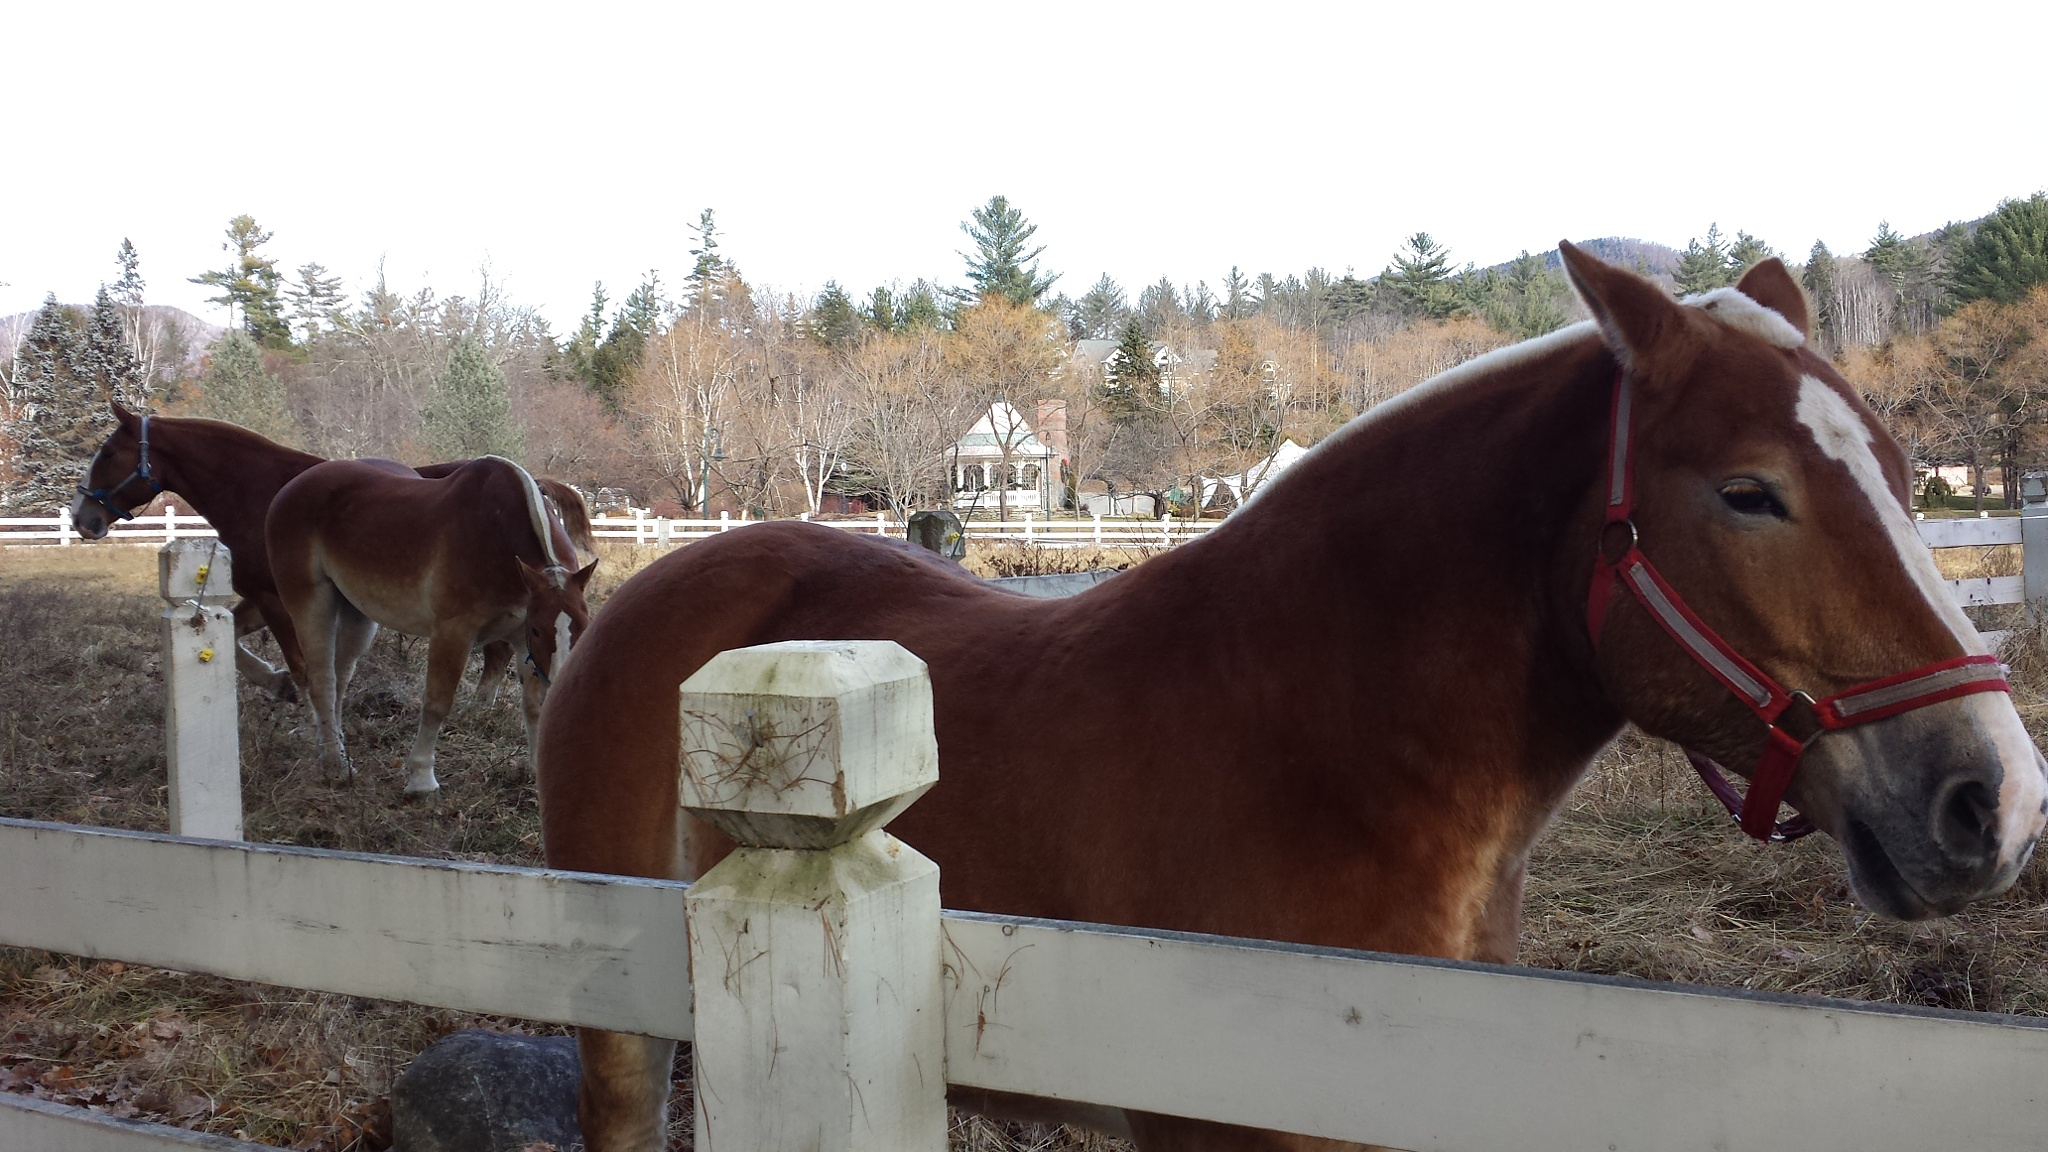 A Few Of The Horses... by Cary J.Casse